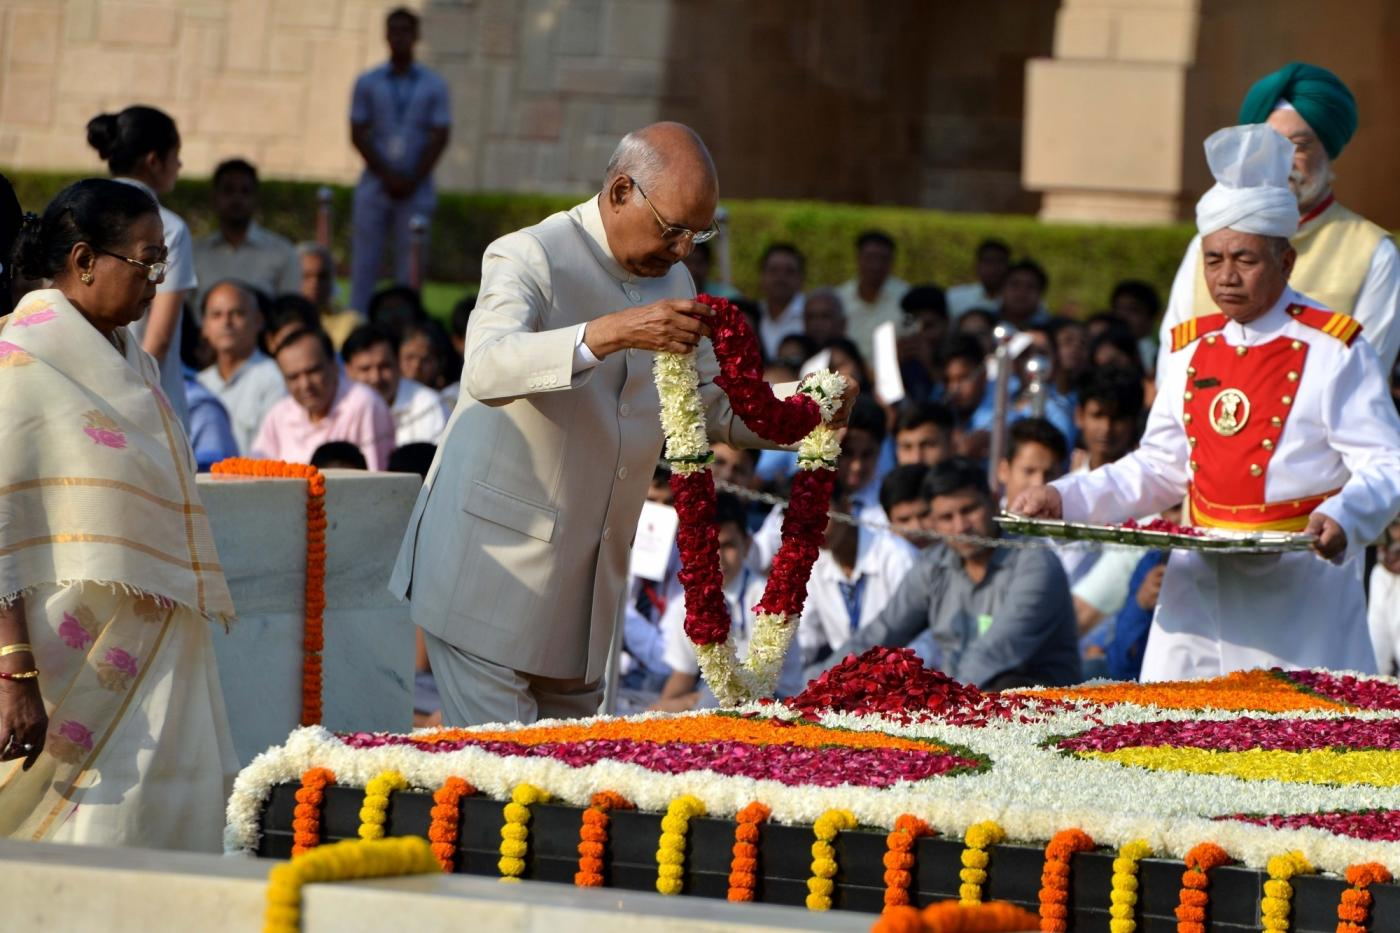 New Delhi: President of India Ram Nath Kovind paying tribute to Mahatma Gandhi on 150th birth Anniversary at Rajghat in New Delhi on Oct. 2, 2019. (Photo: IANS) by .